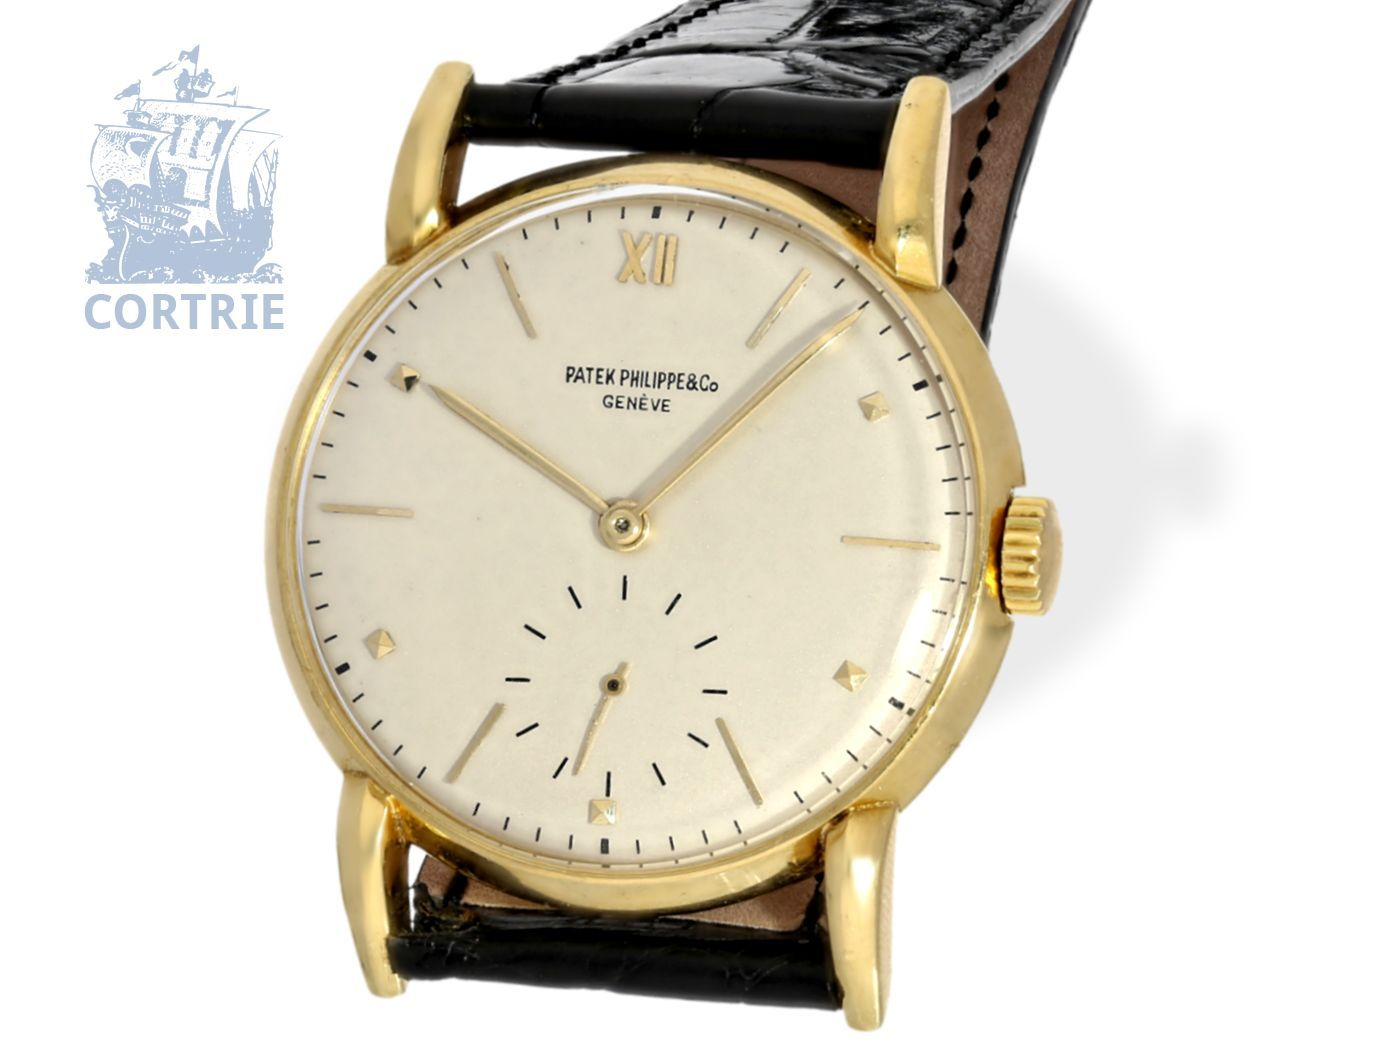 Wristwatch: very fine and early Patek Philippe gentlemen's watch from 1947, rare reference 1595, very beautiful condition-